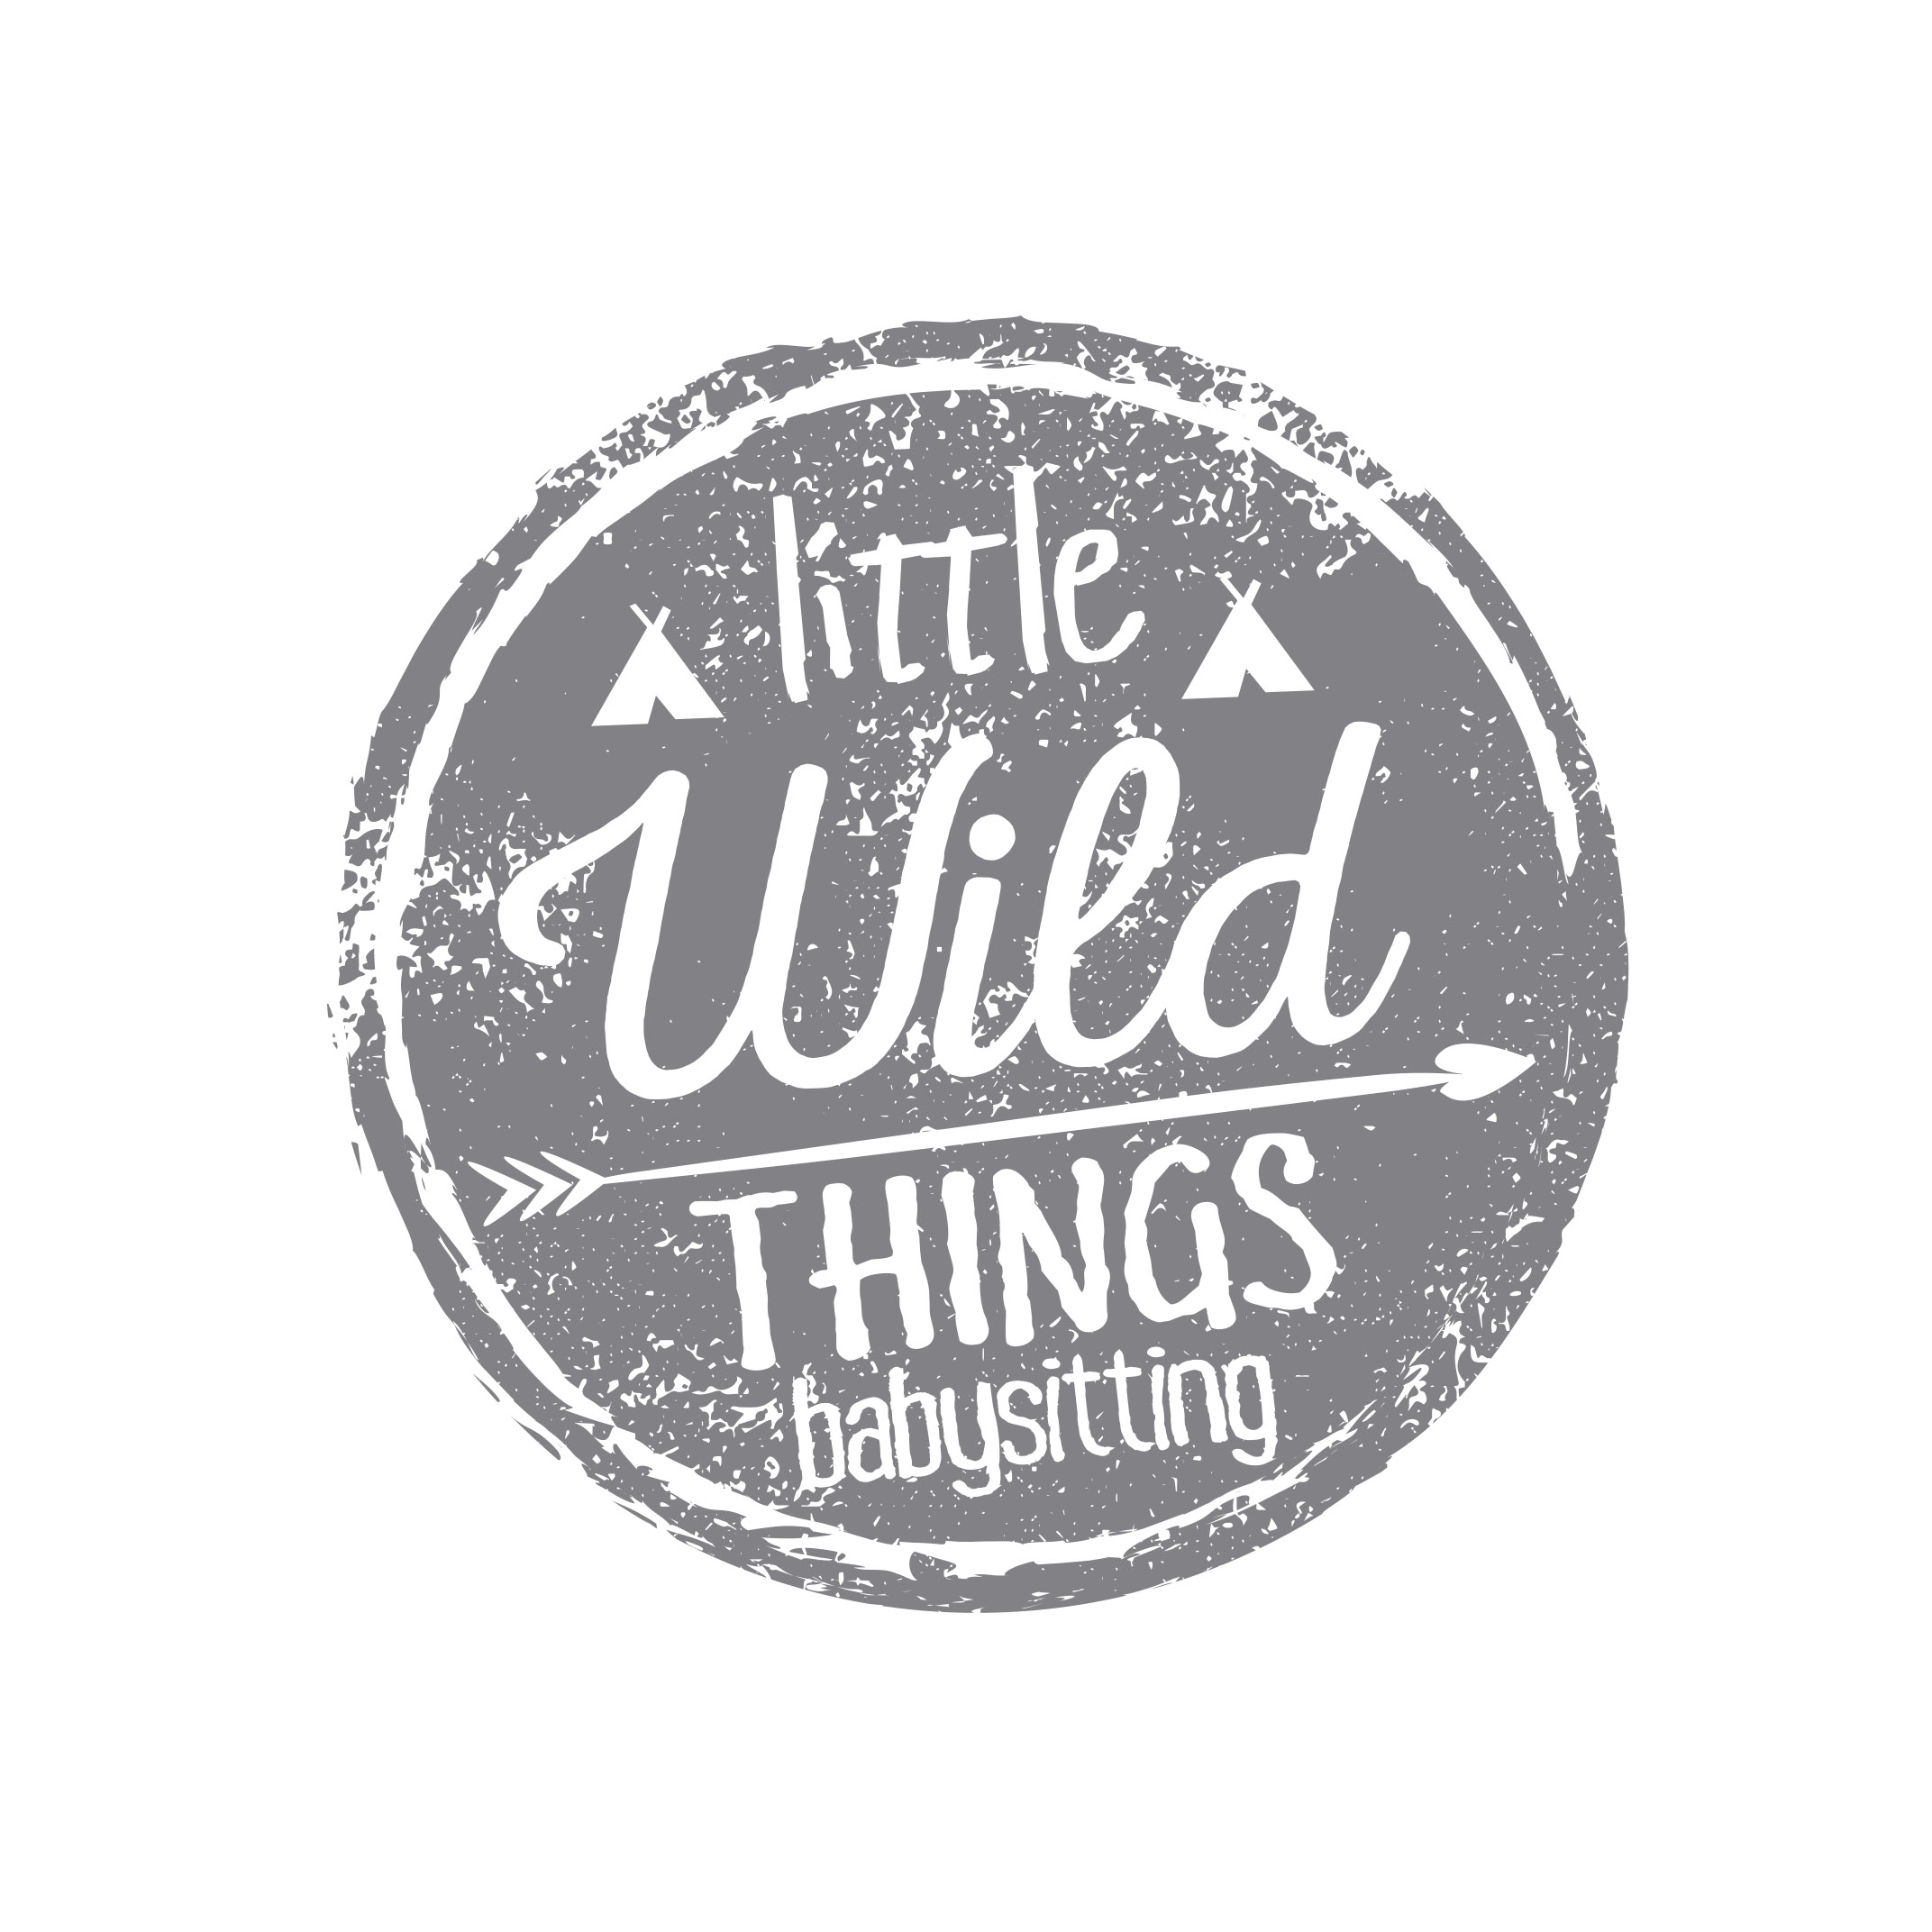 LITTLEWILDTHINGS_.jpg